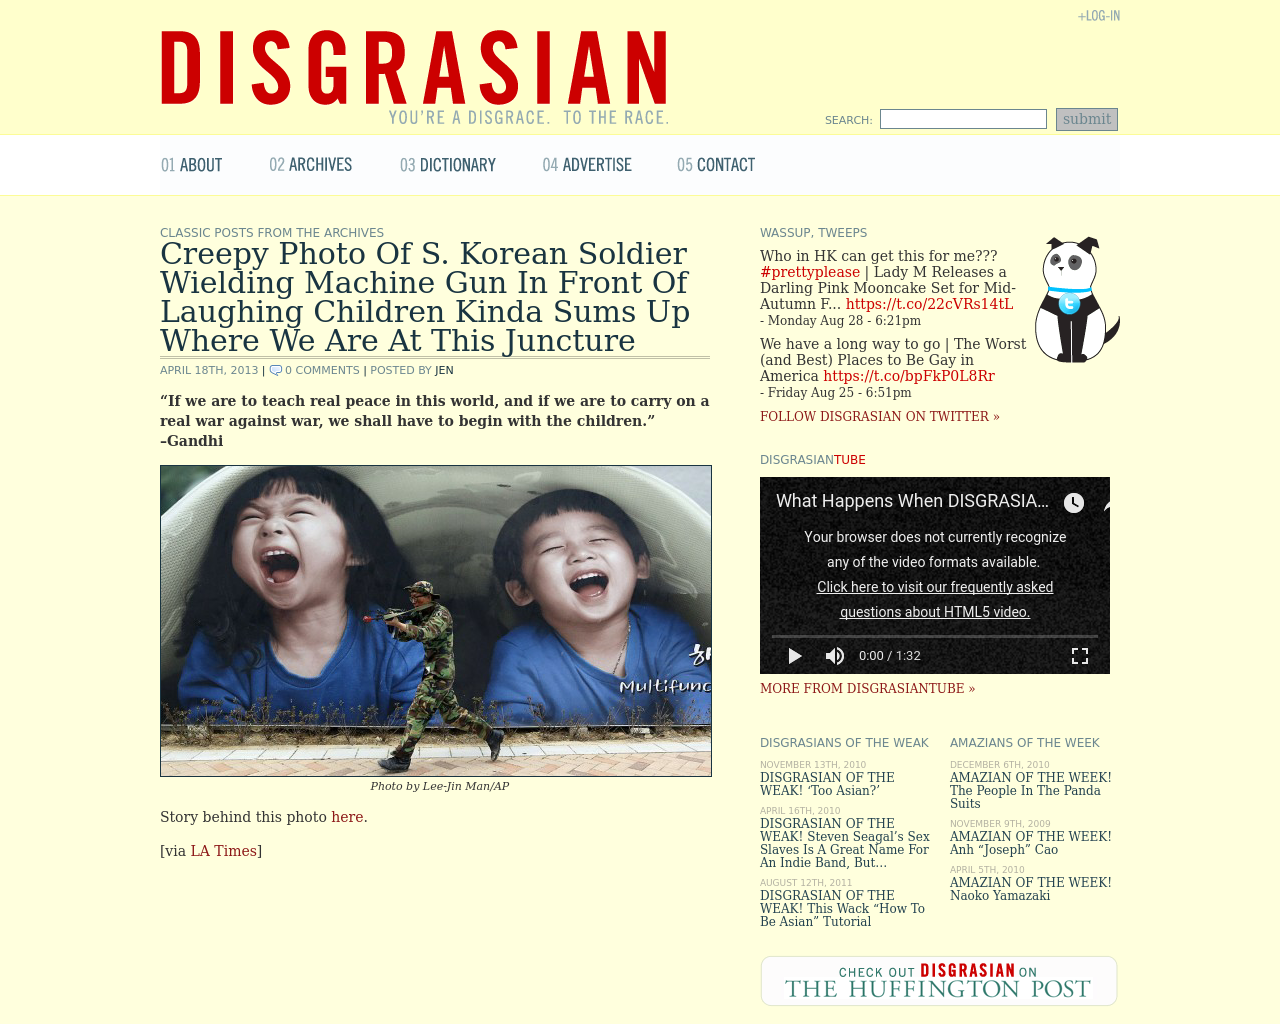 Disgrasian-Advertising-Reviews-Pricing